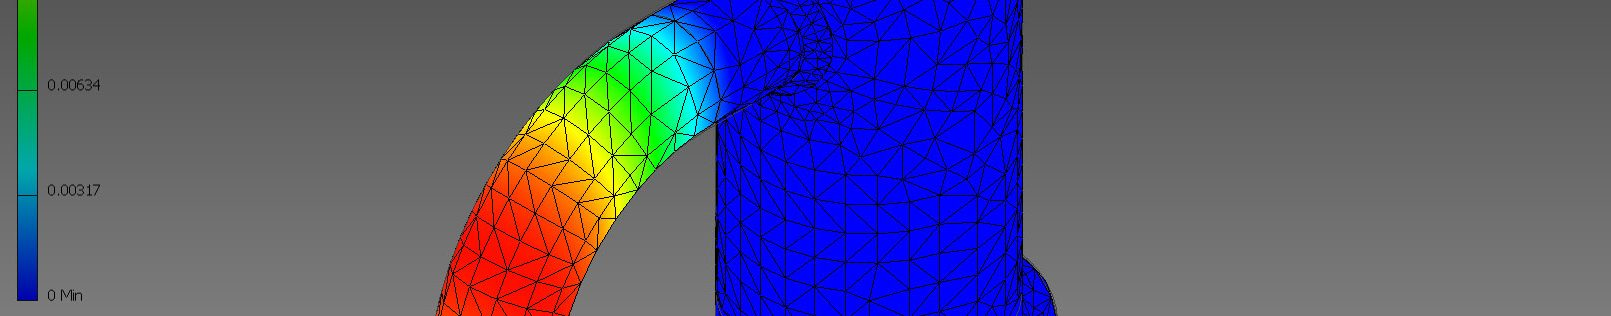 Consulting service provider delivering Finite Element Analysis services to industry